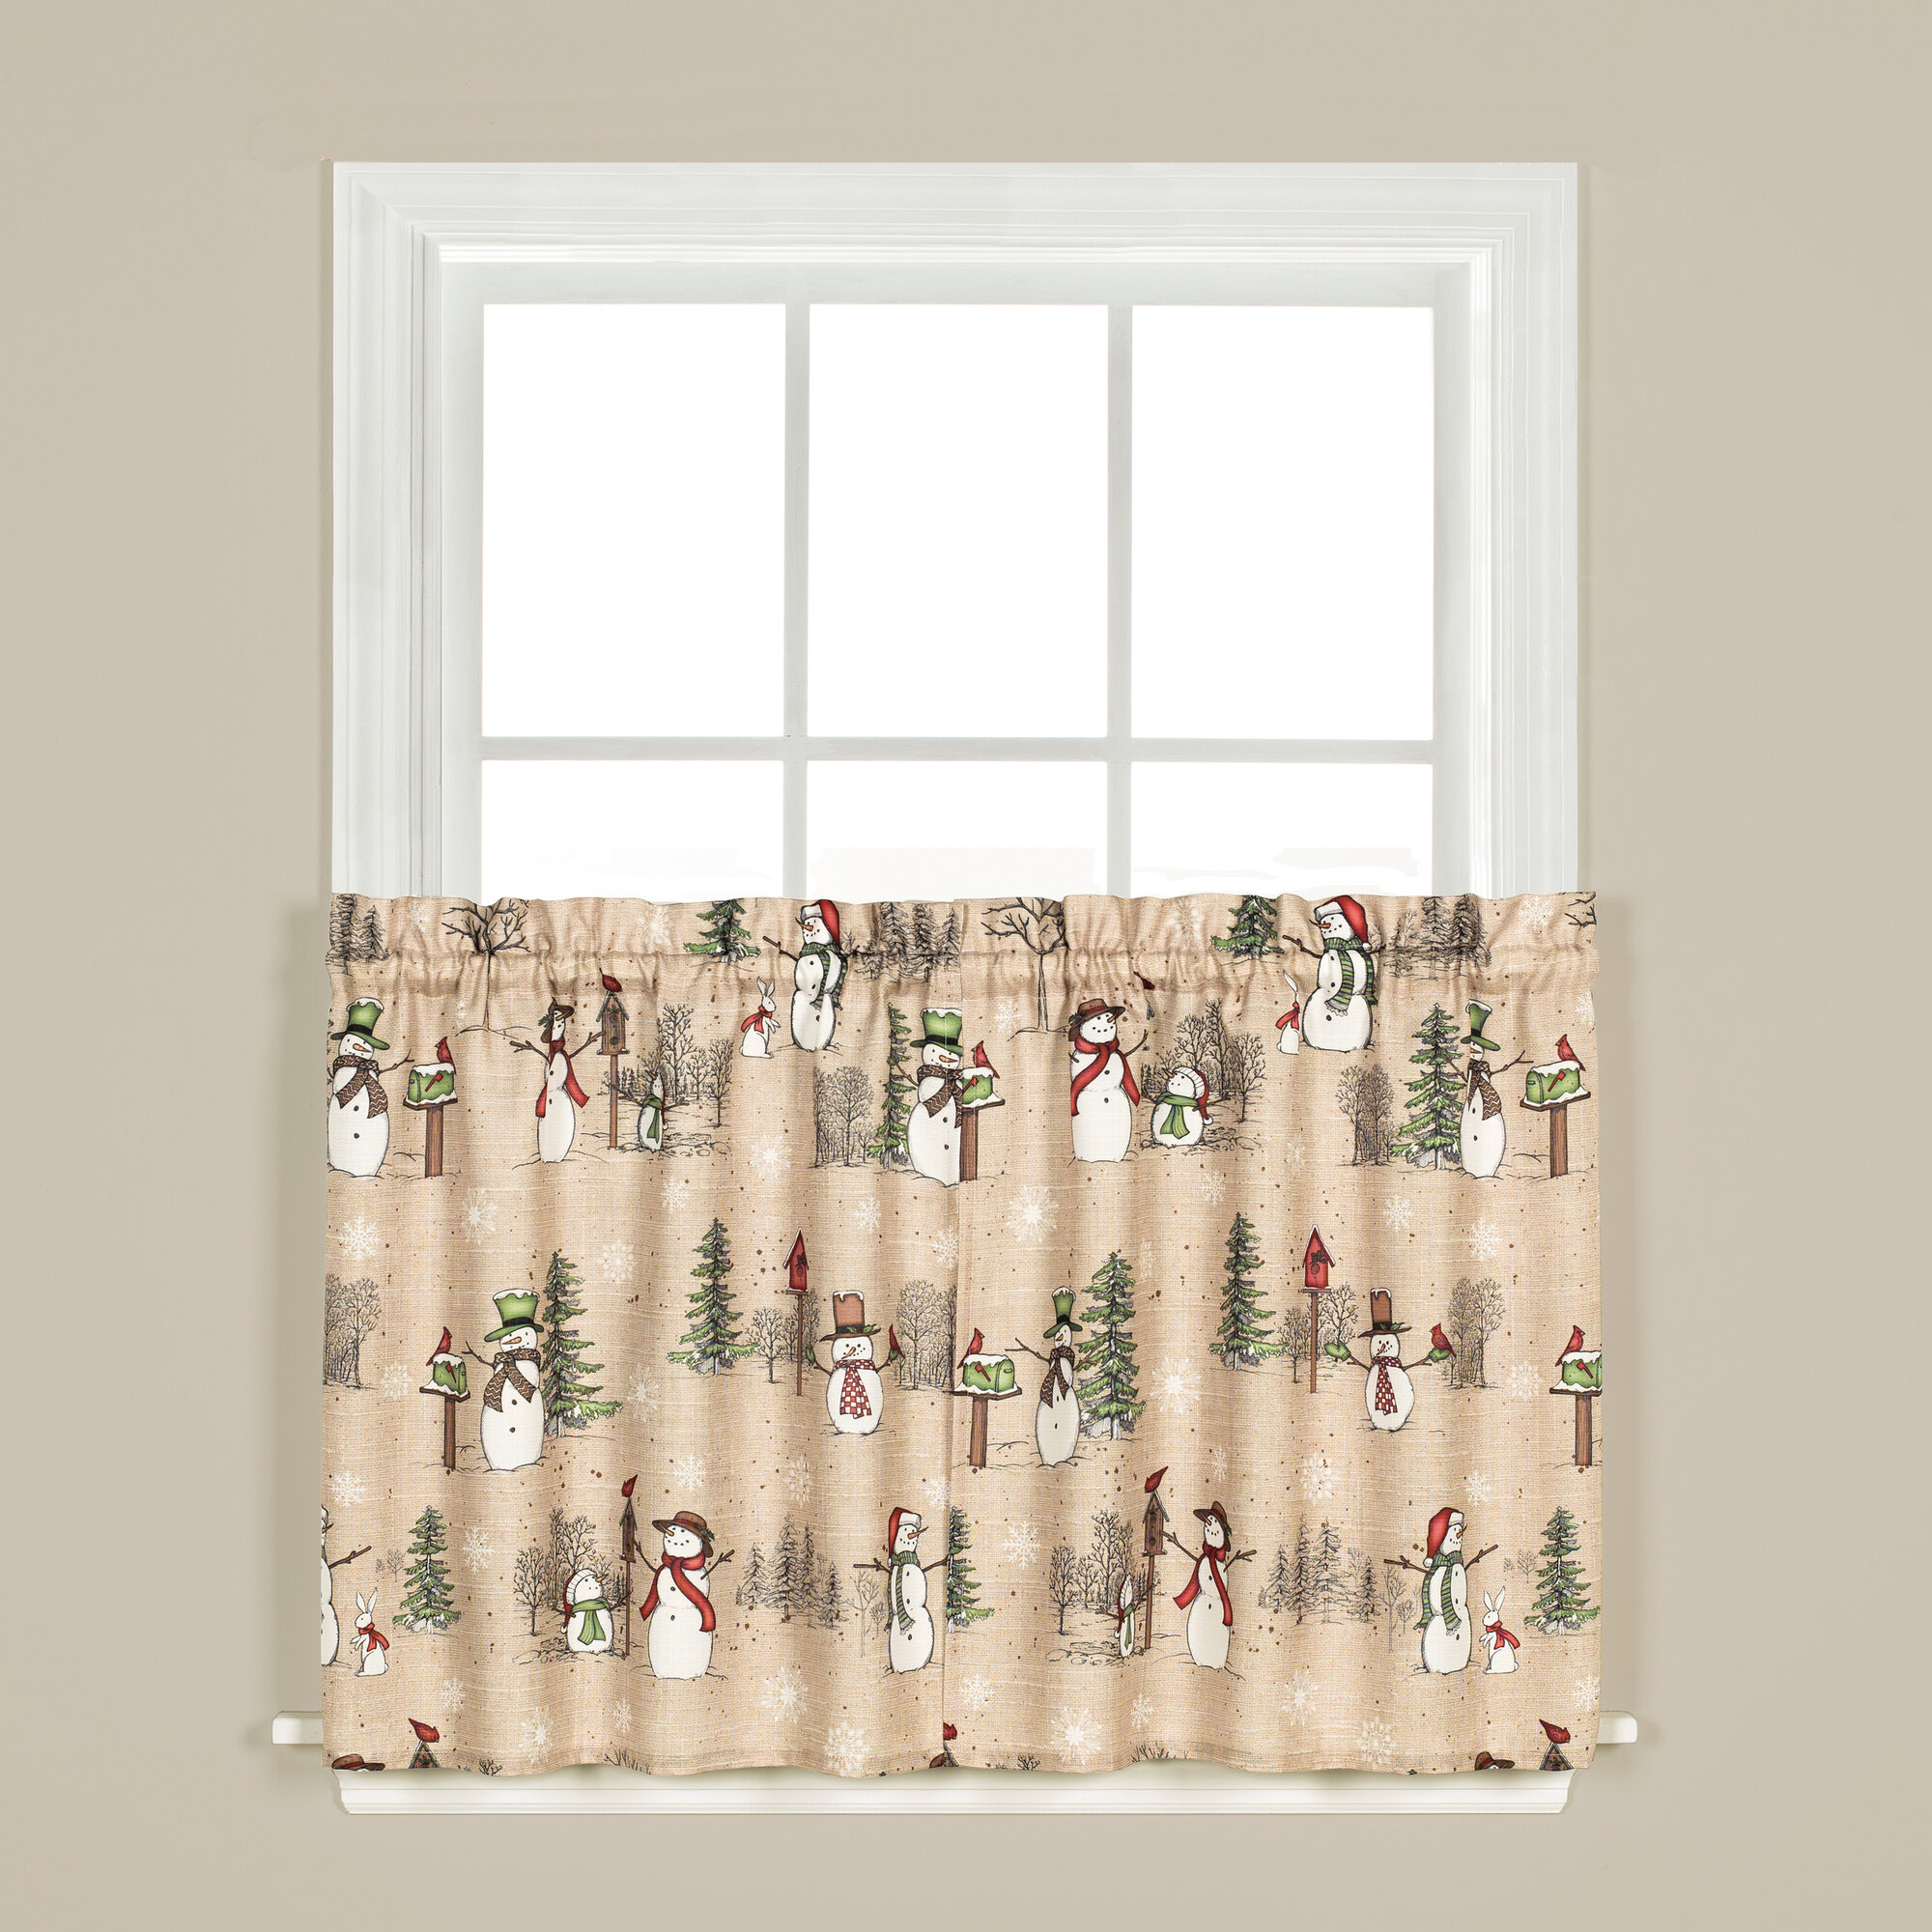 Details About The Holiday Aisle Brenna Snowman Tier Pair Cafe Curtain in Dexter 24 Inch Tier Pairs in Green (Image 7 of 20)